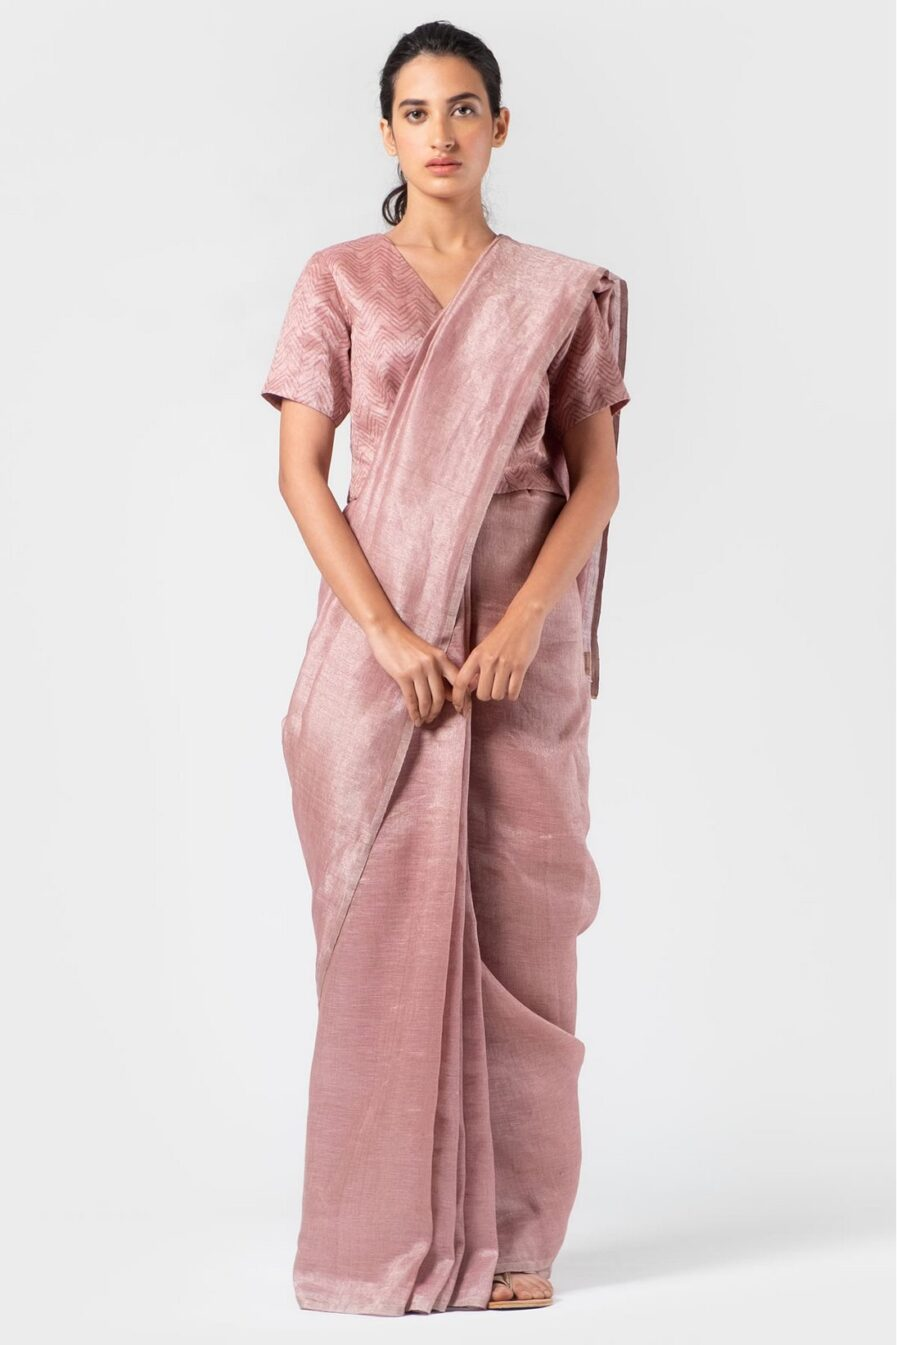 Anavila Light thulian soft mauve metallic sari